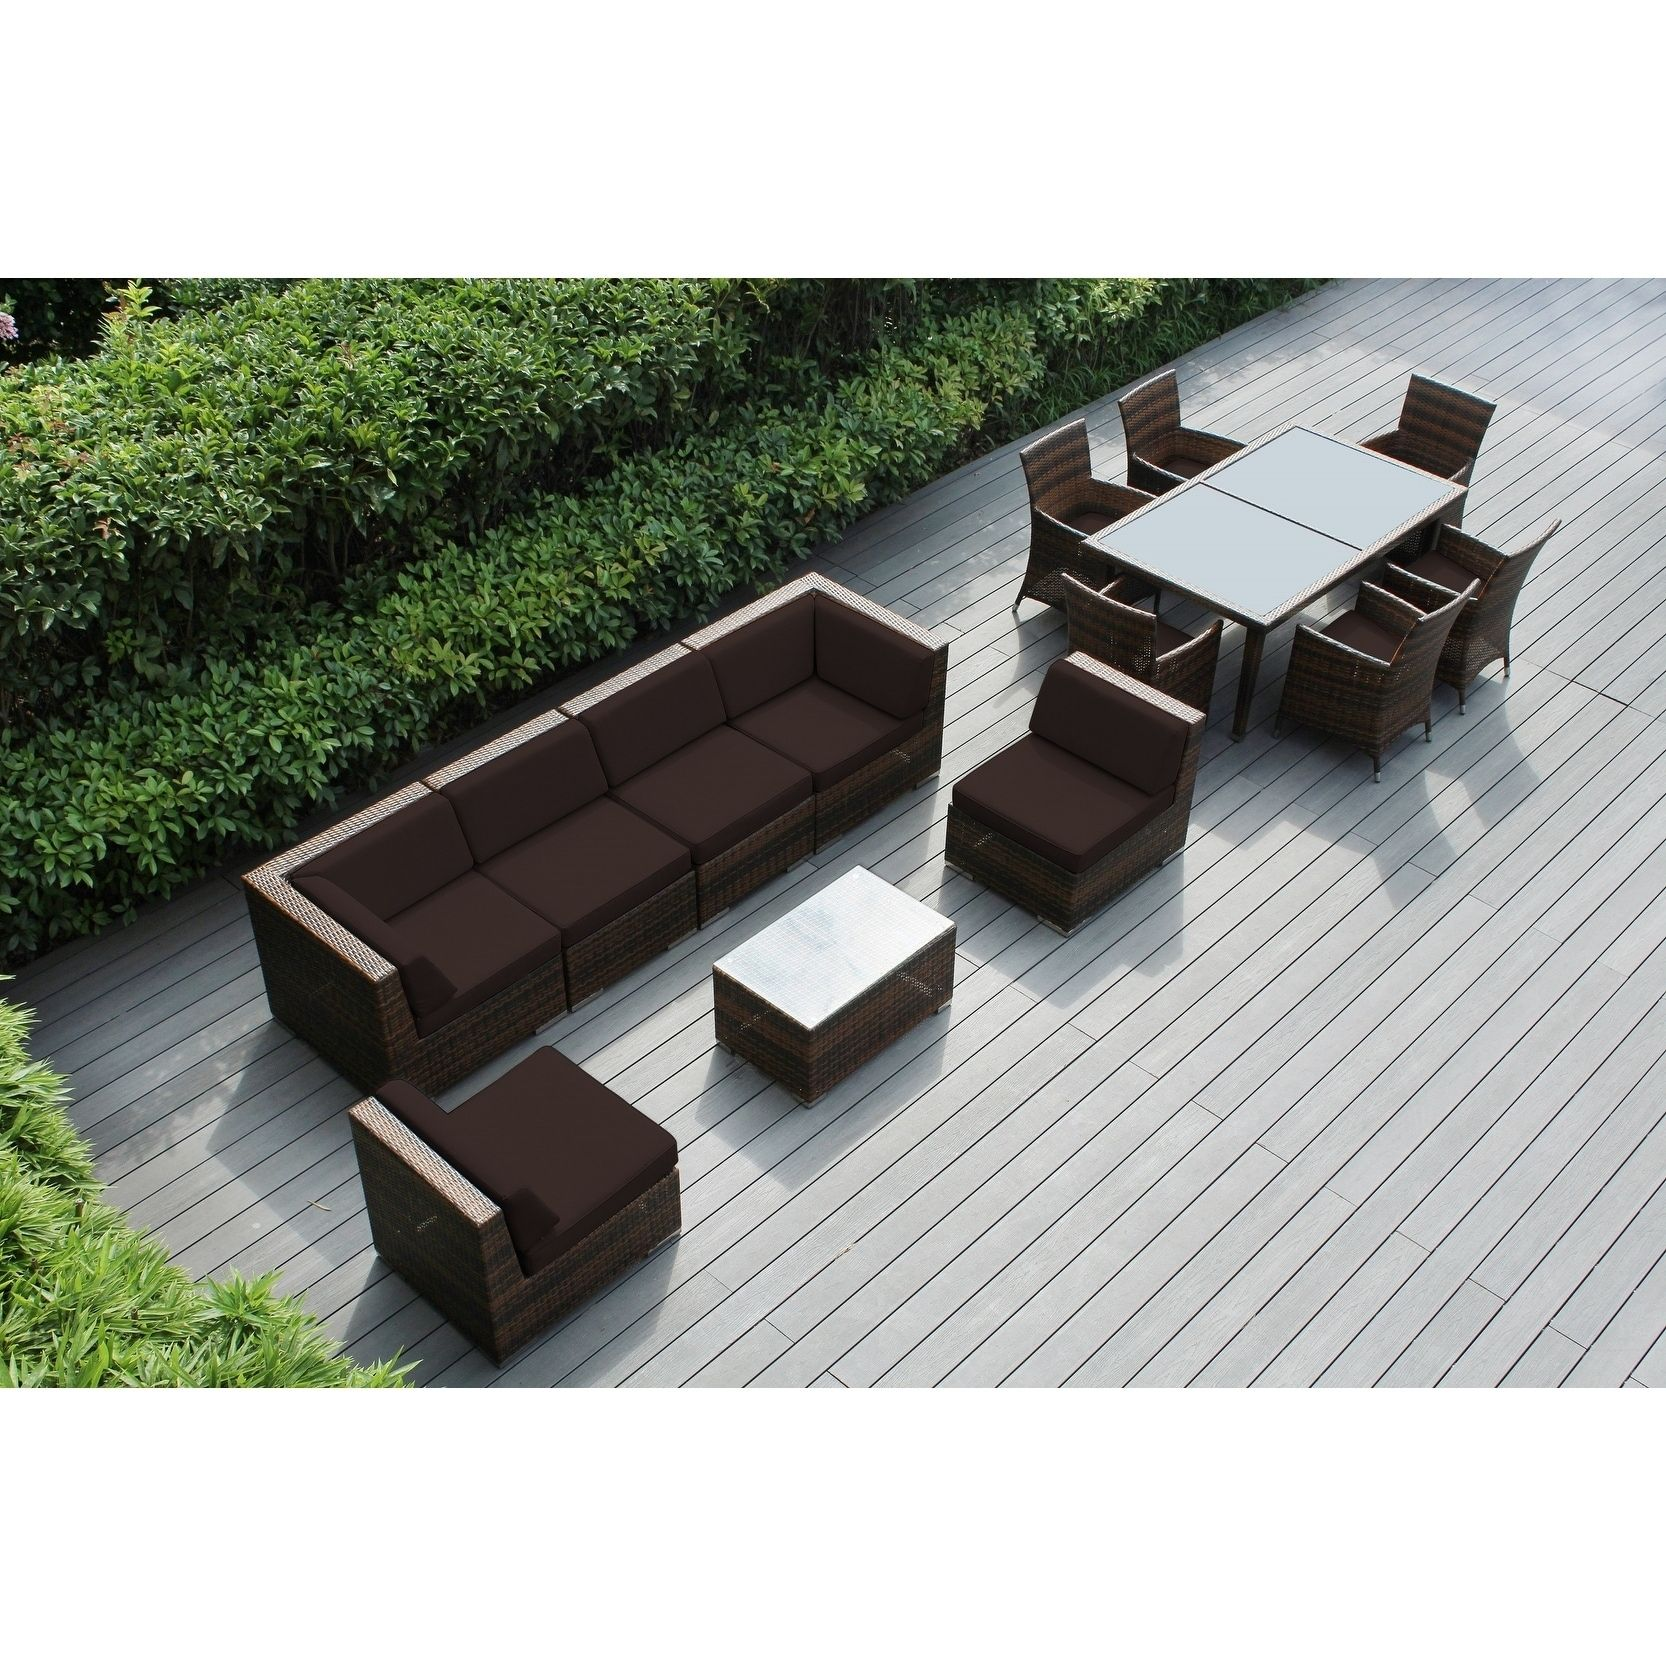 Ohana Outdoor Patio 14 Piece Mixed Brown Wicker Sofa and Dining